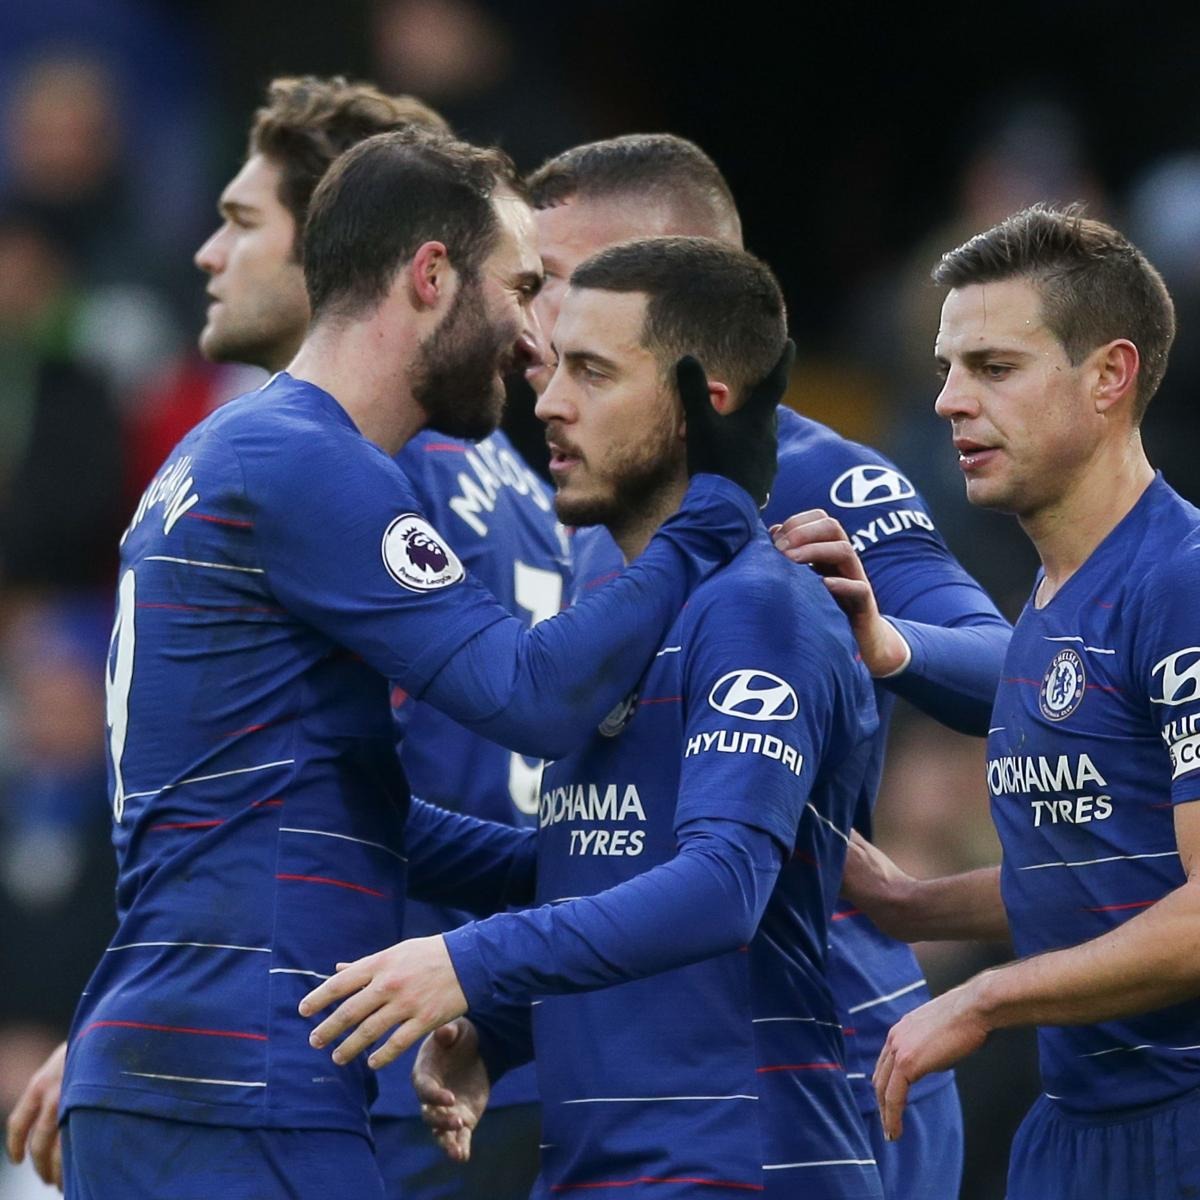 Tottenham Vs Huddersfield Live: EPL Table: Saturday's Week 25 Results, Scores And 2019